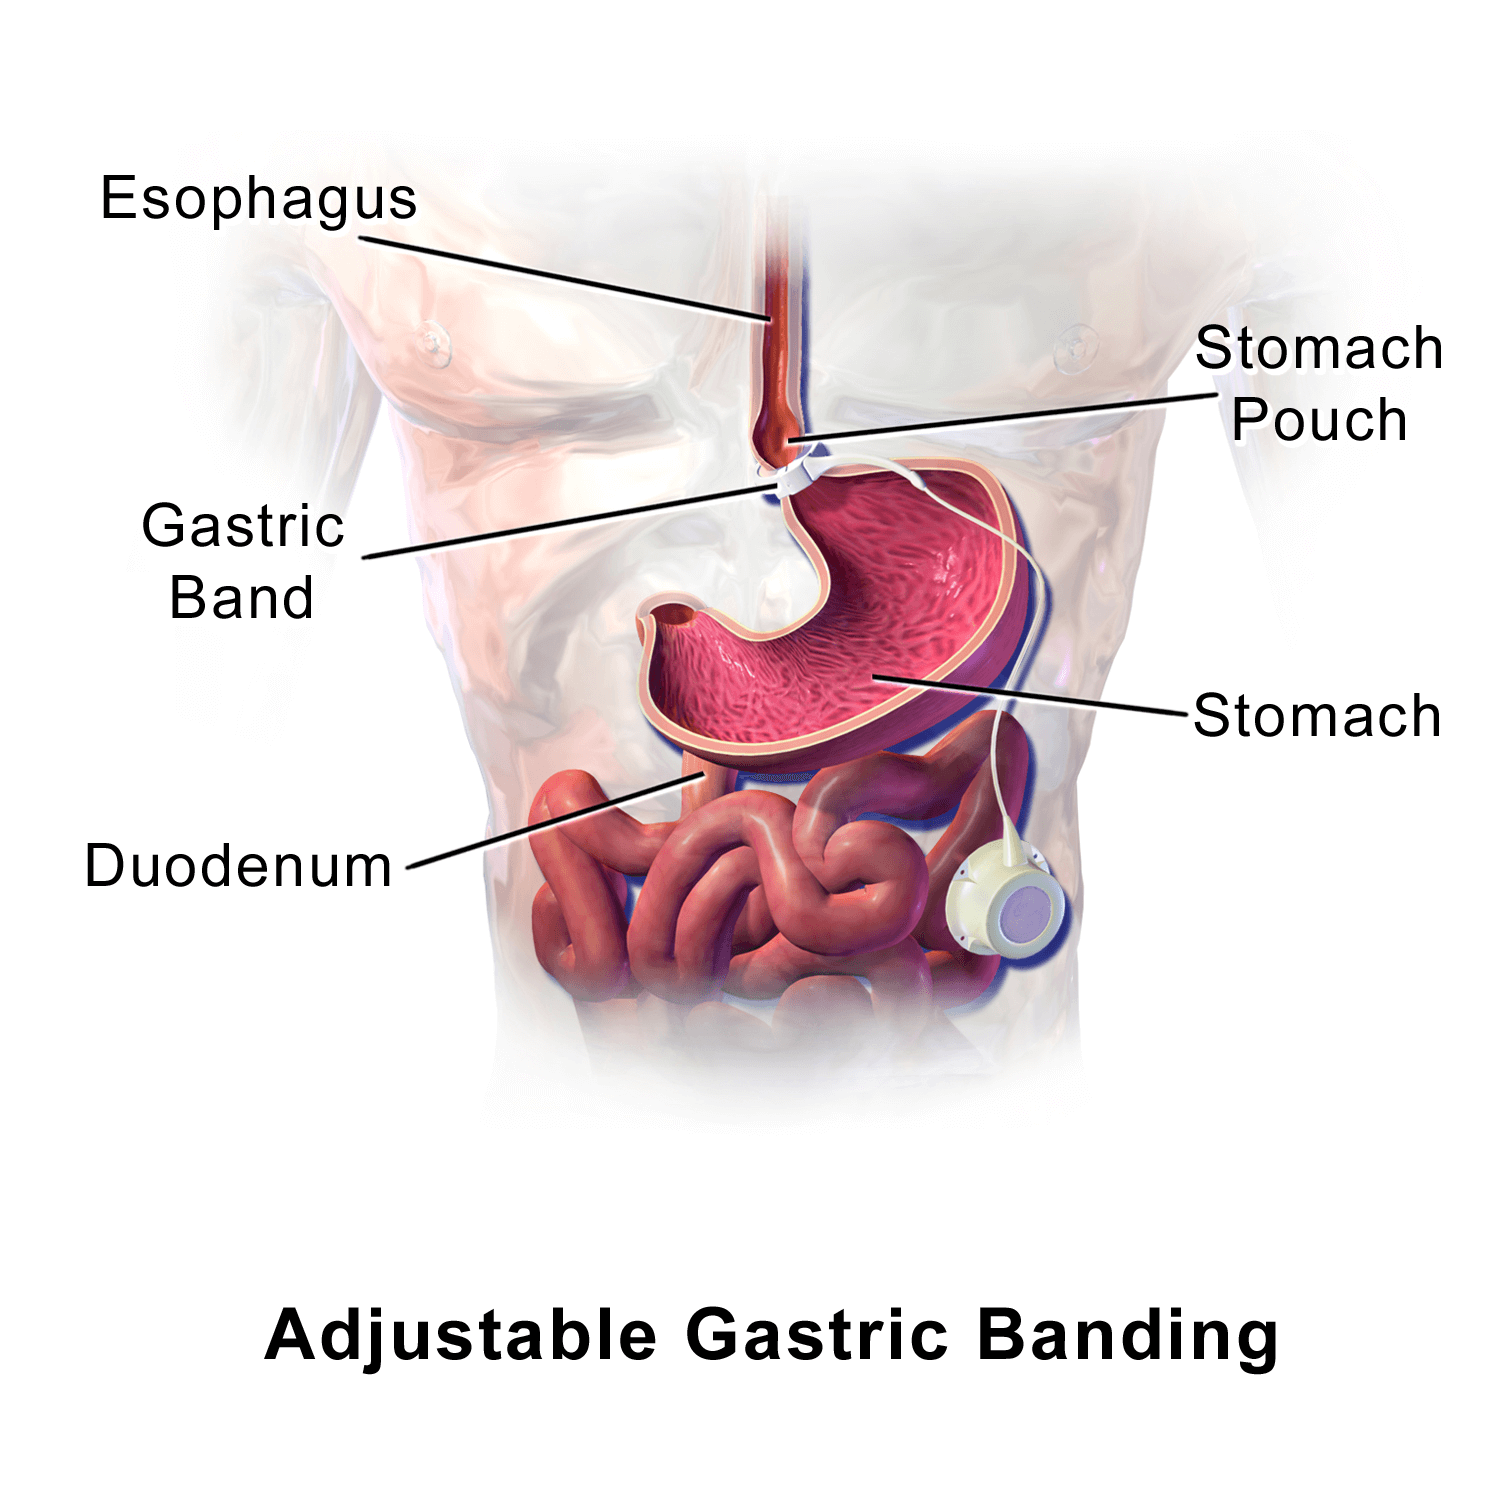 gastric band explaination